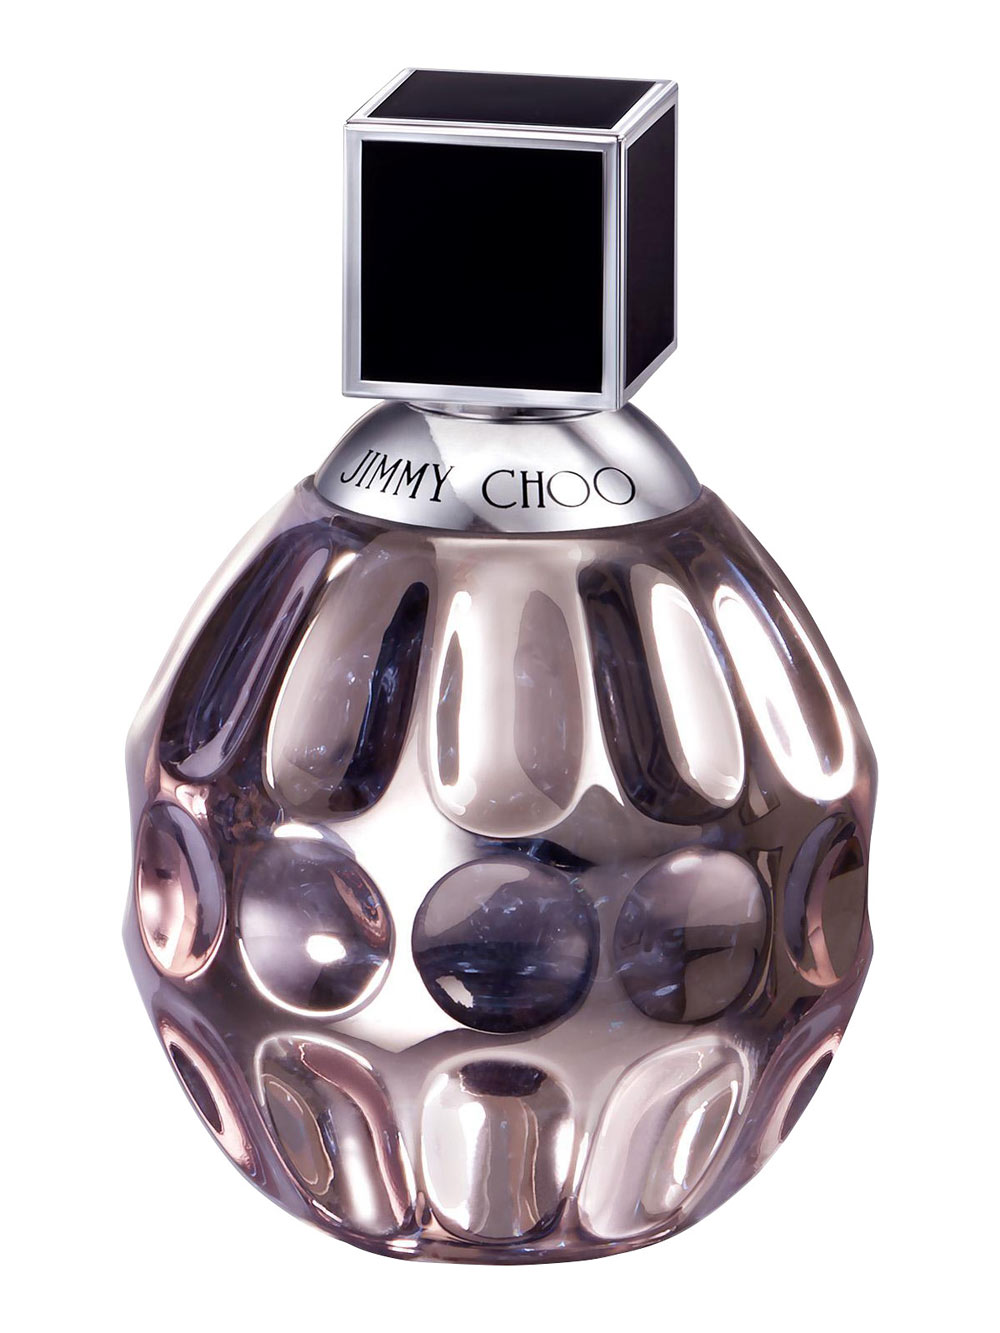 Jimmy Choo Rose Gold Limited Edition